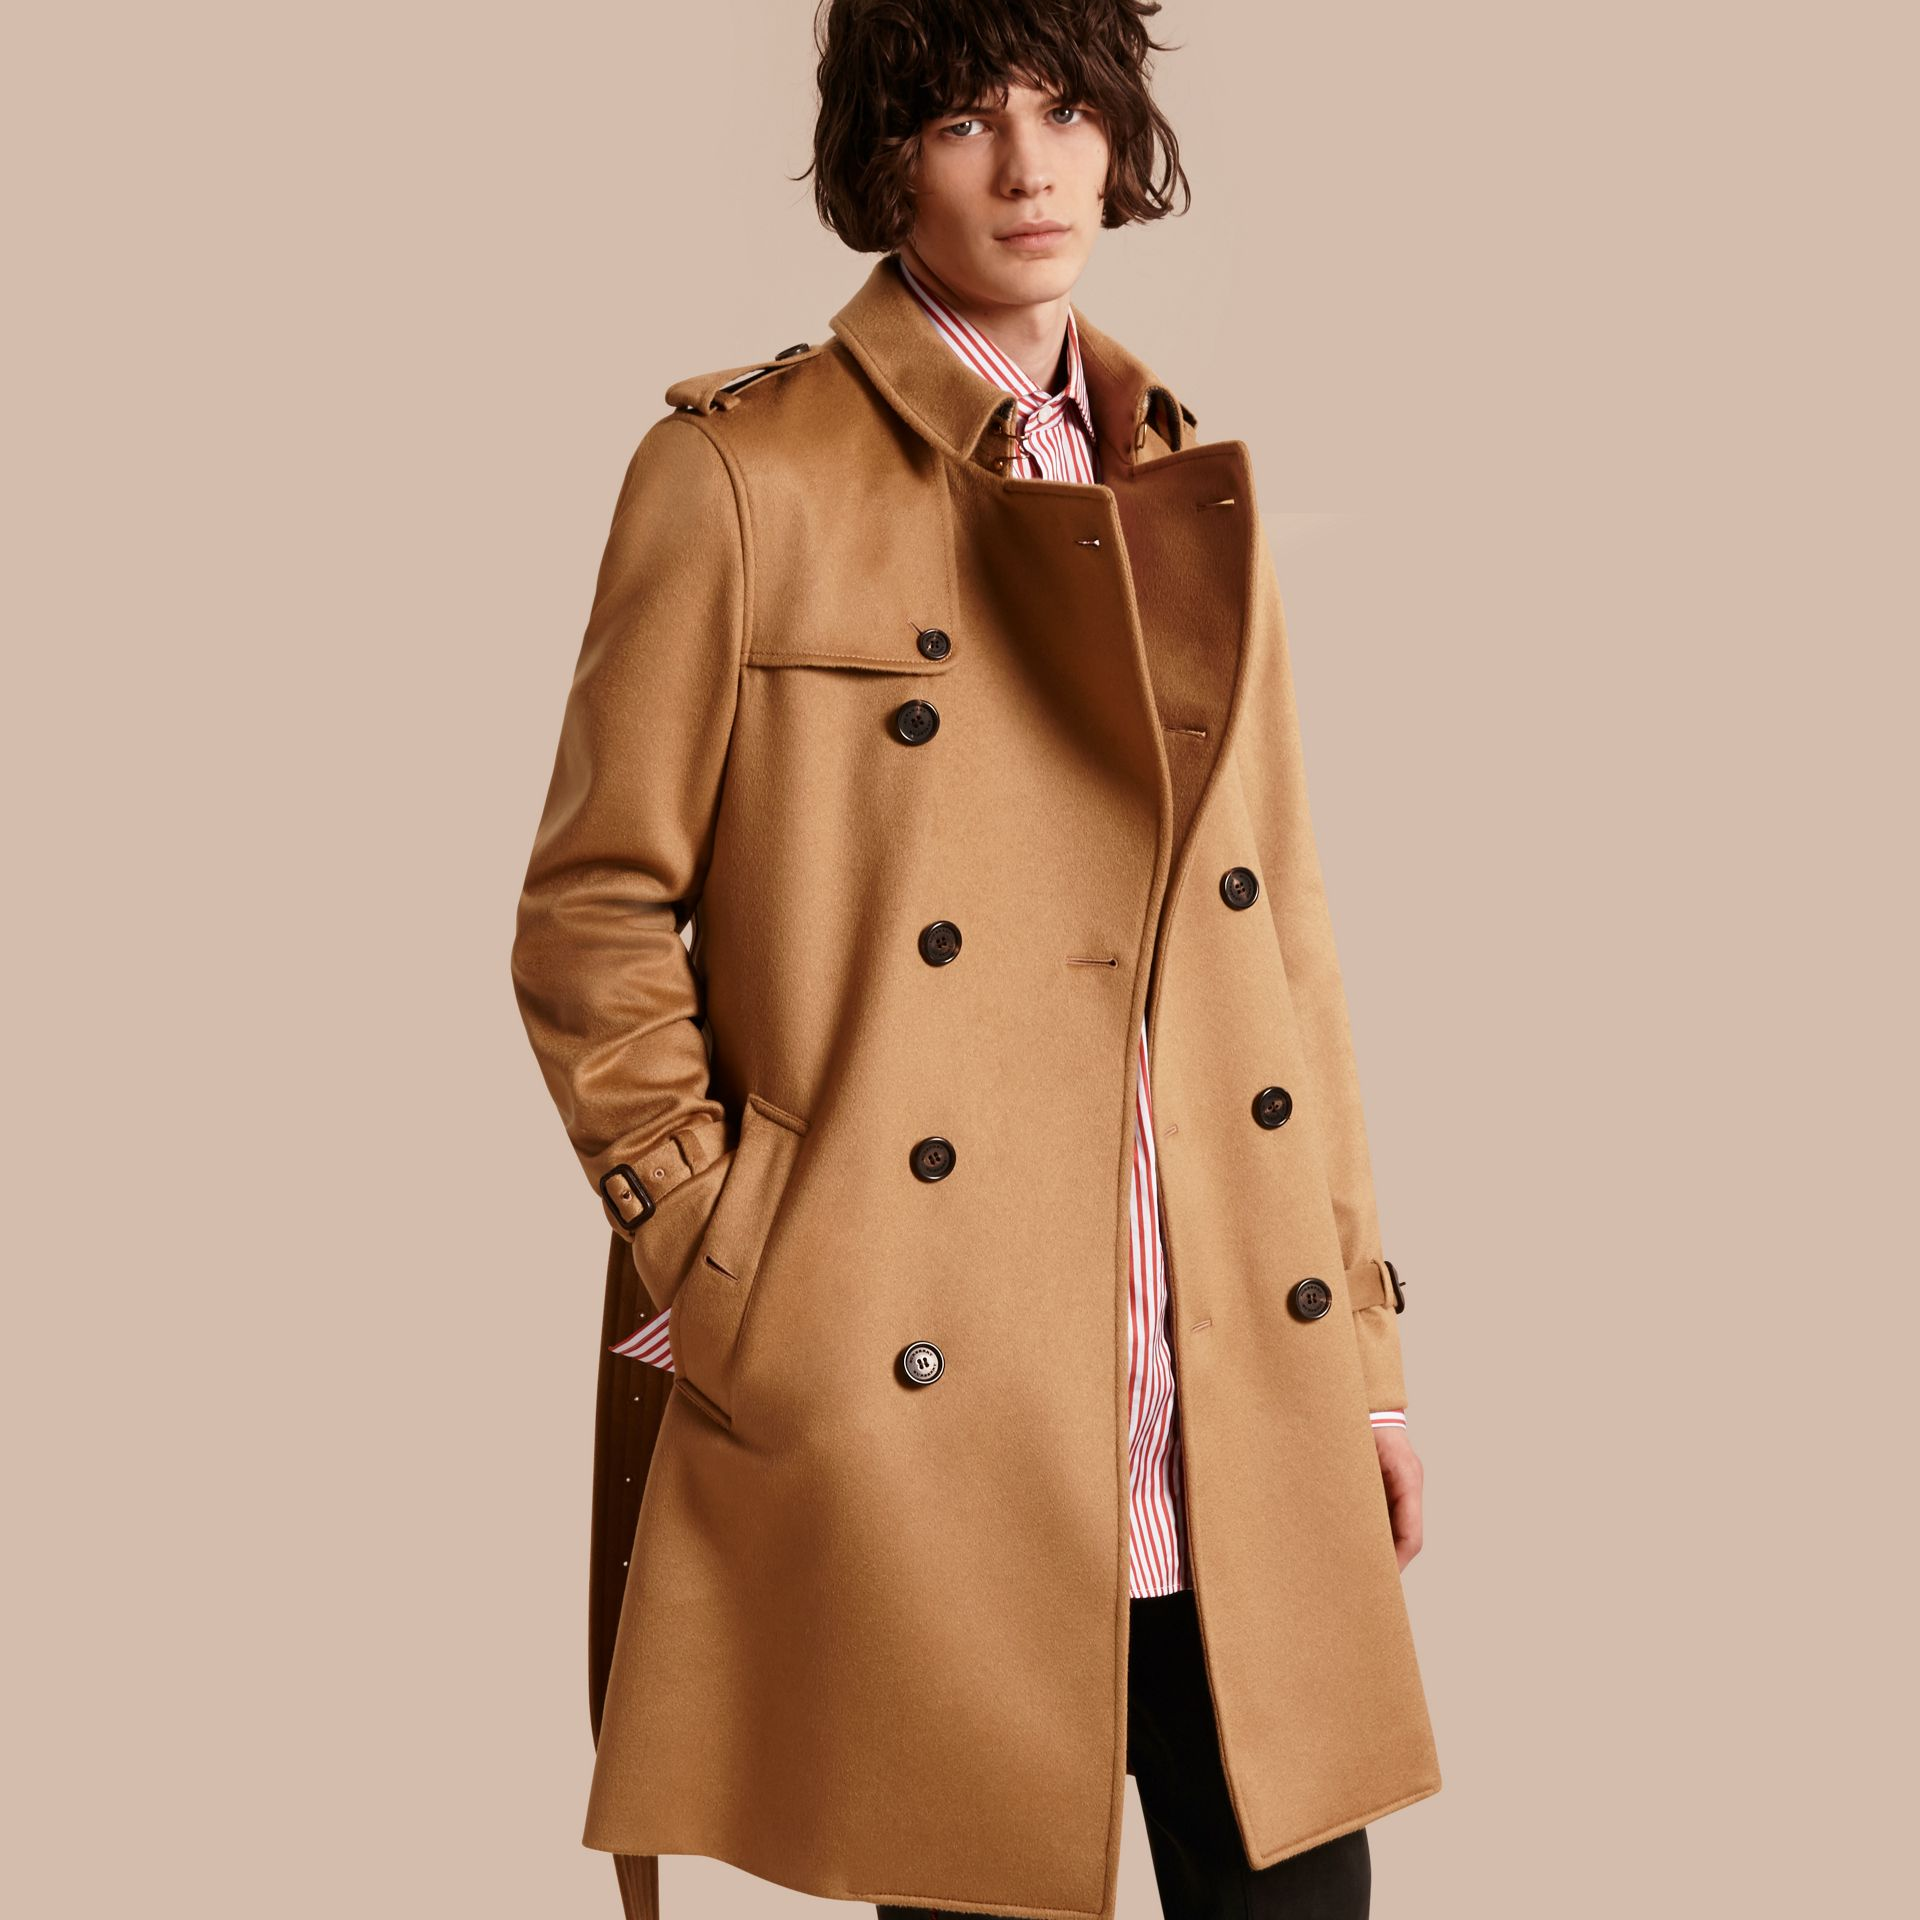 Dark camel Cashmere Trench Coat Dark Camel - gallery image 1